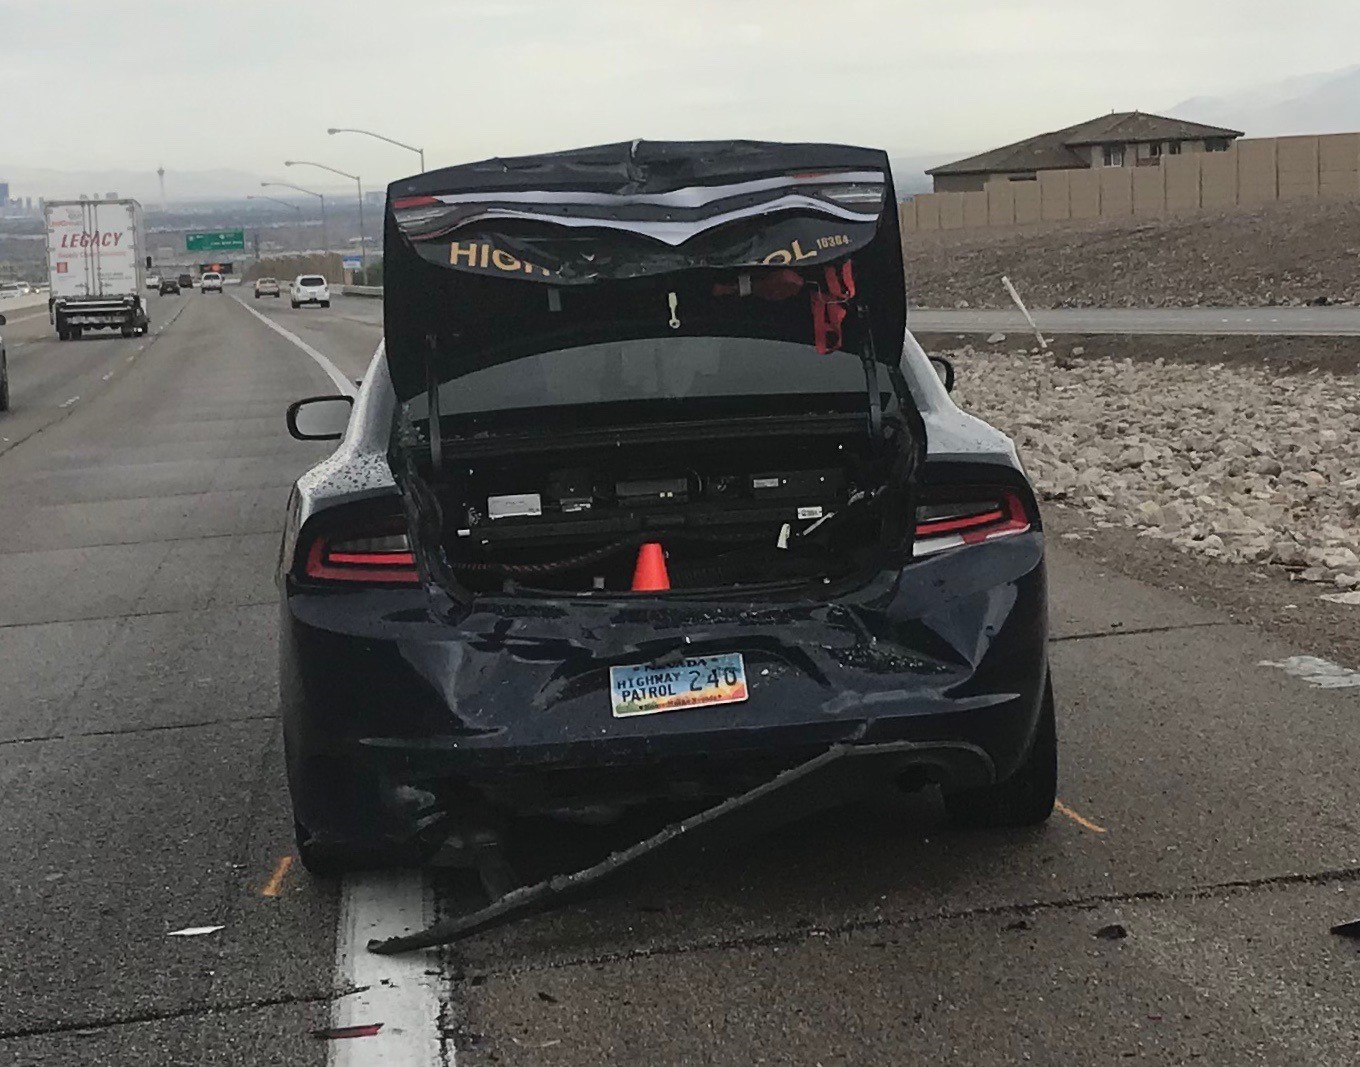 Nhp Trooper Treated For Minor Injuries After Car Strikes